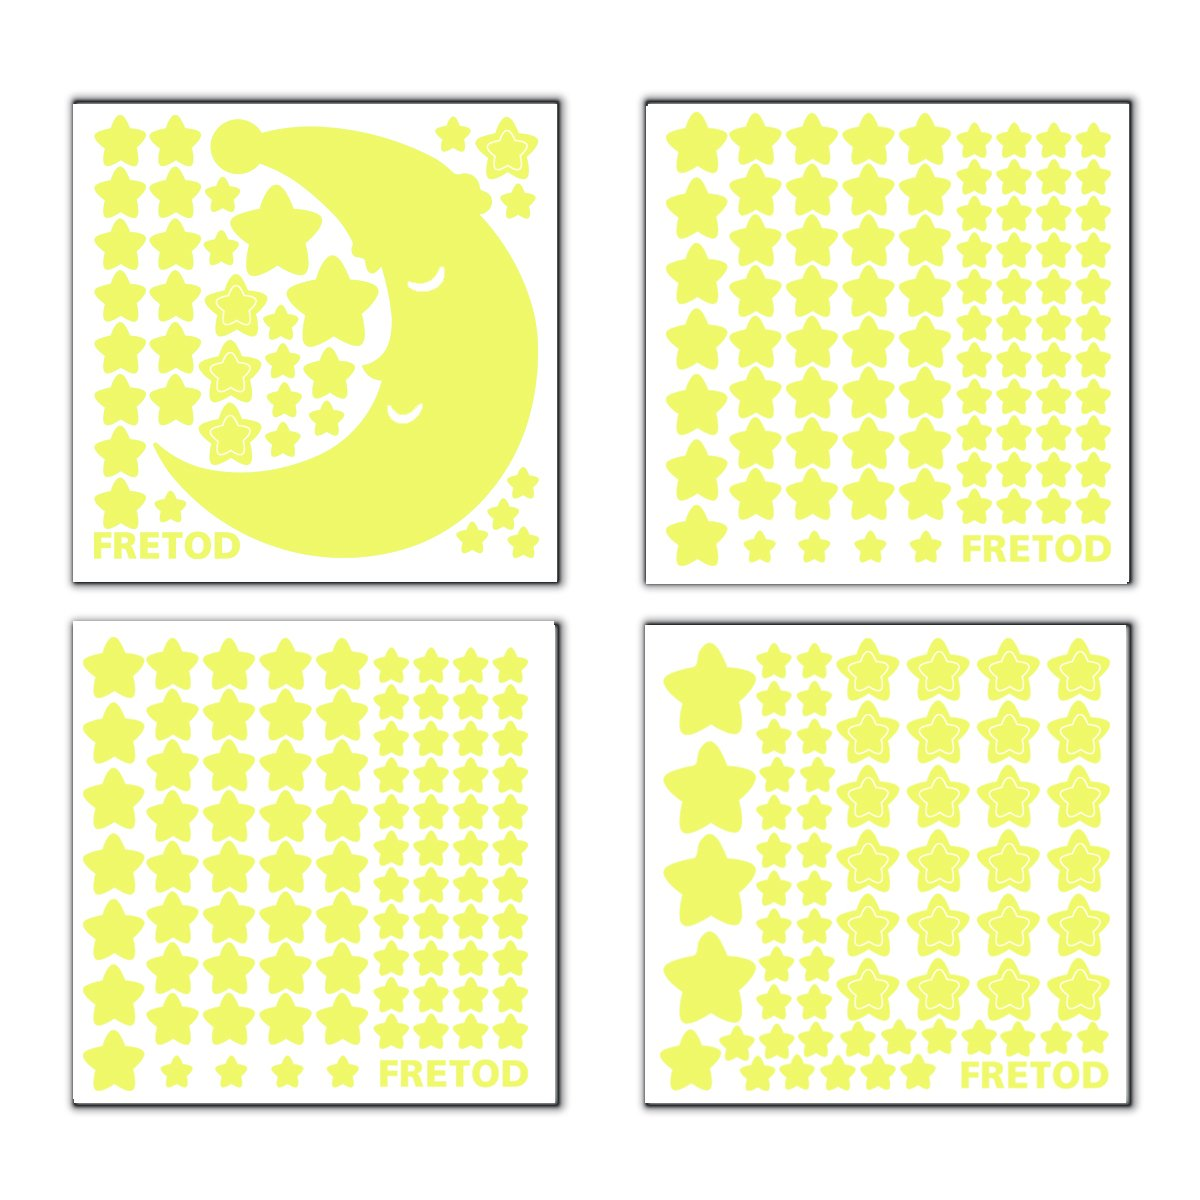 Glow in The Dark Moon and Stars - 300PCS - 9.4'' Large Moon and Various Size Fluorescent Stars for Ceiling Decoration in Kids Room by FRETOD (Image #4)